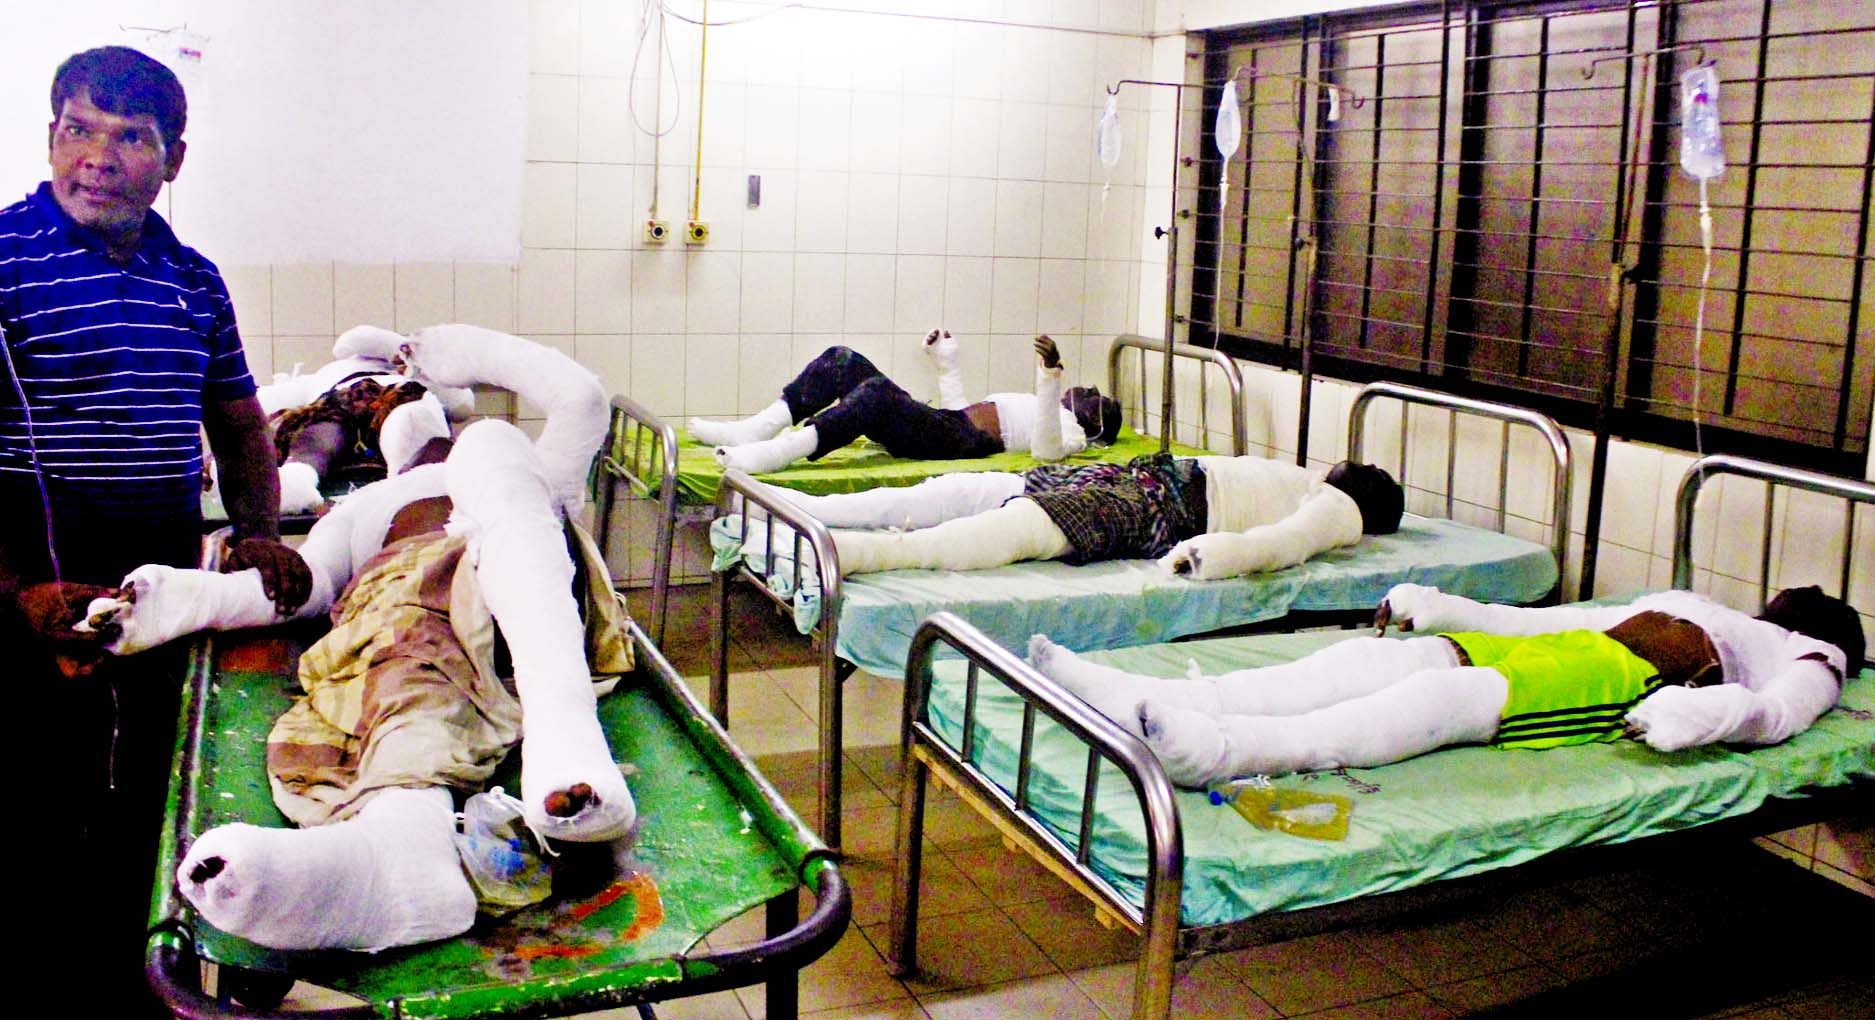 Six persons who were injured in a water tank explosion while cleaning it in city`s Dhanmondi area were admitted to the Burn Unit of Dhaka Medical College Hospital on Wednesday.